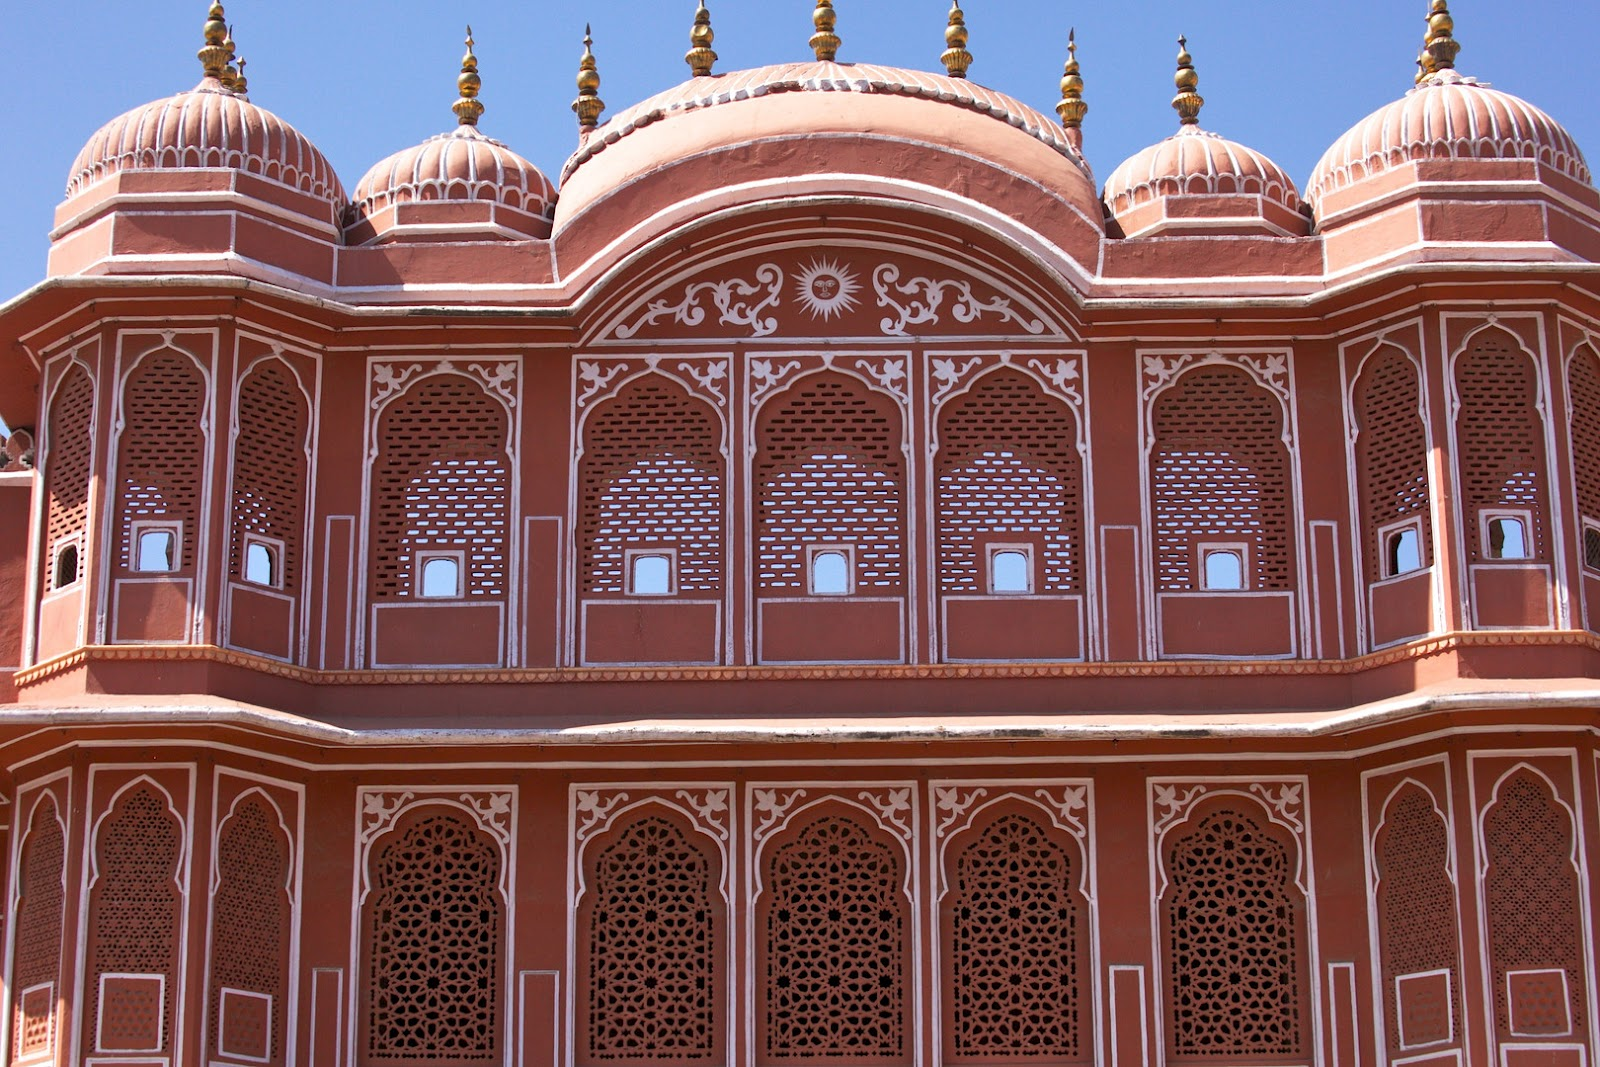 Jali or latticed window some interesting facts navrang for Home architecture jaipur